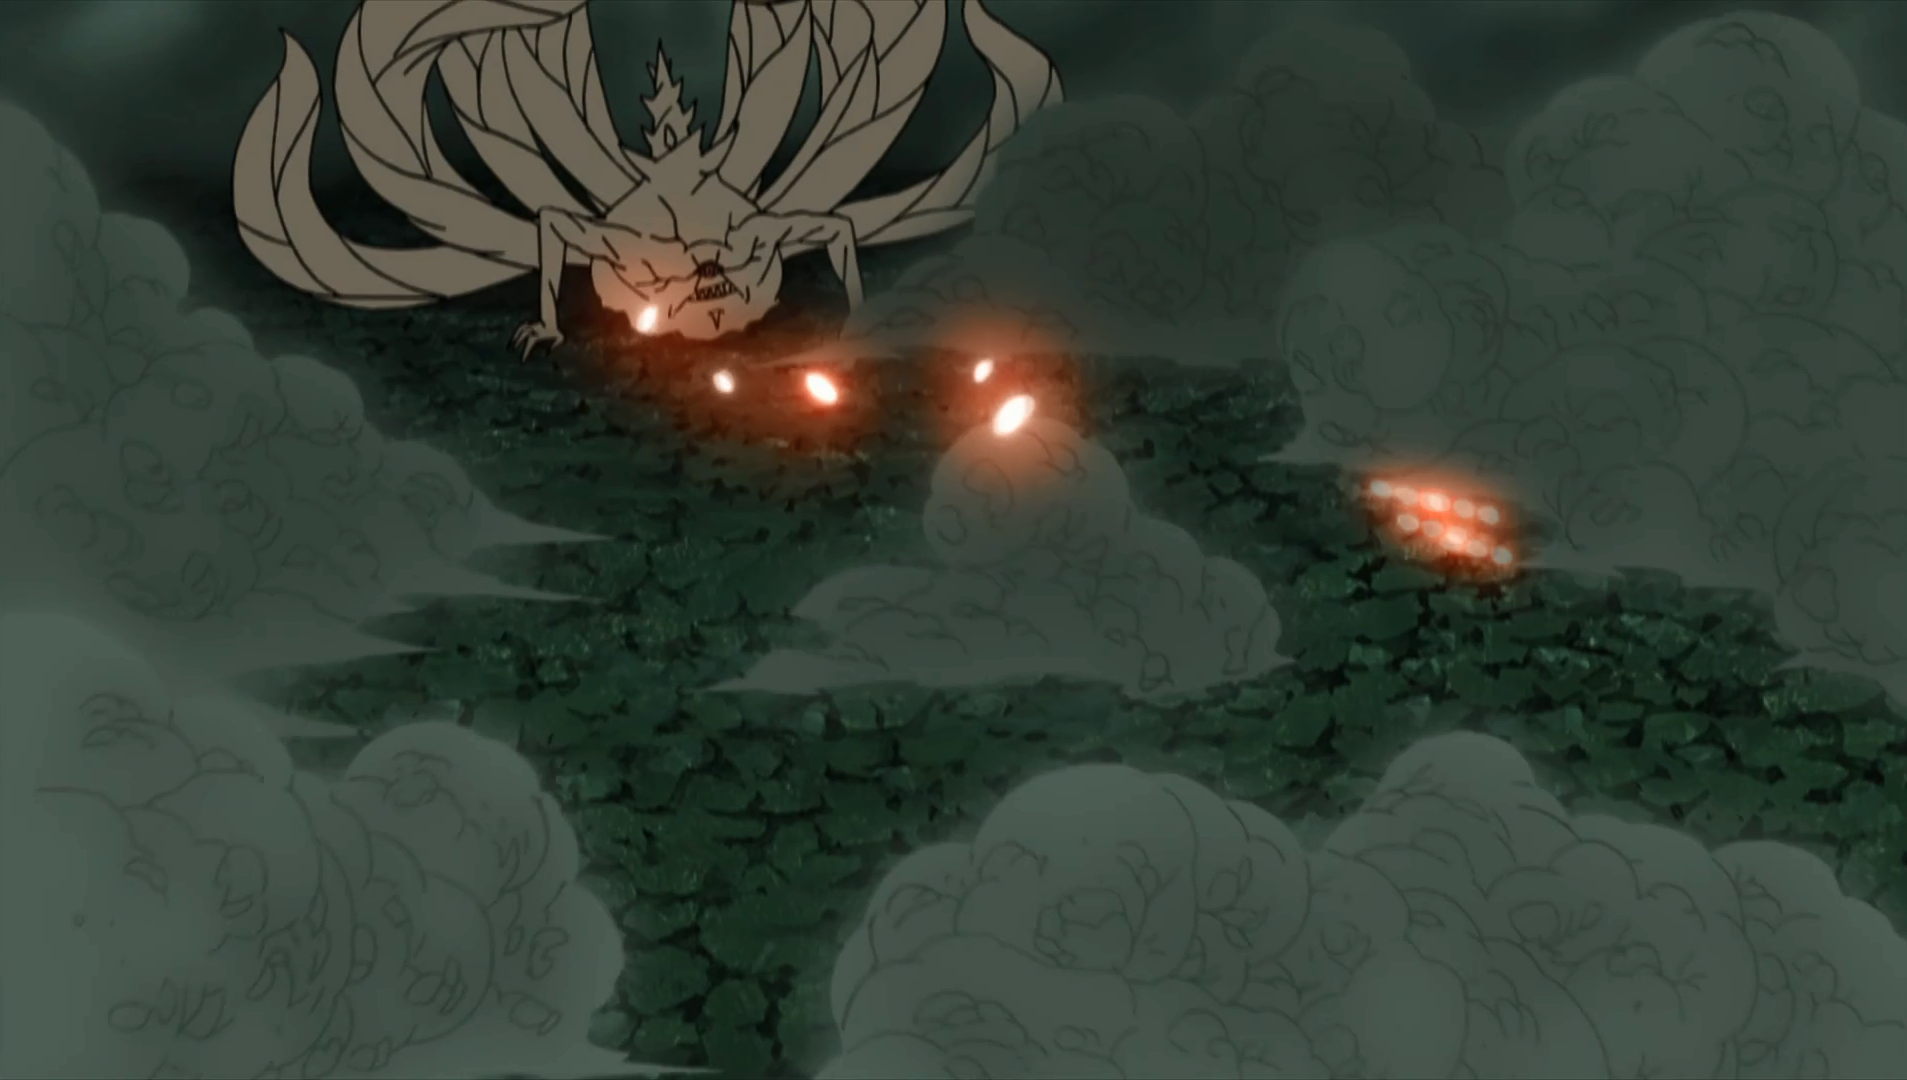 continuous tailed beast balls